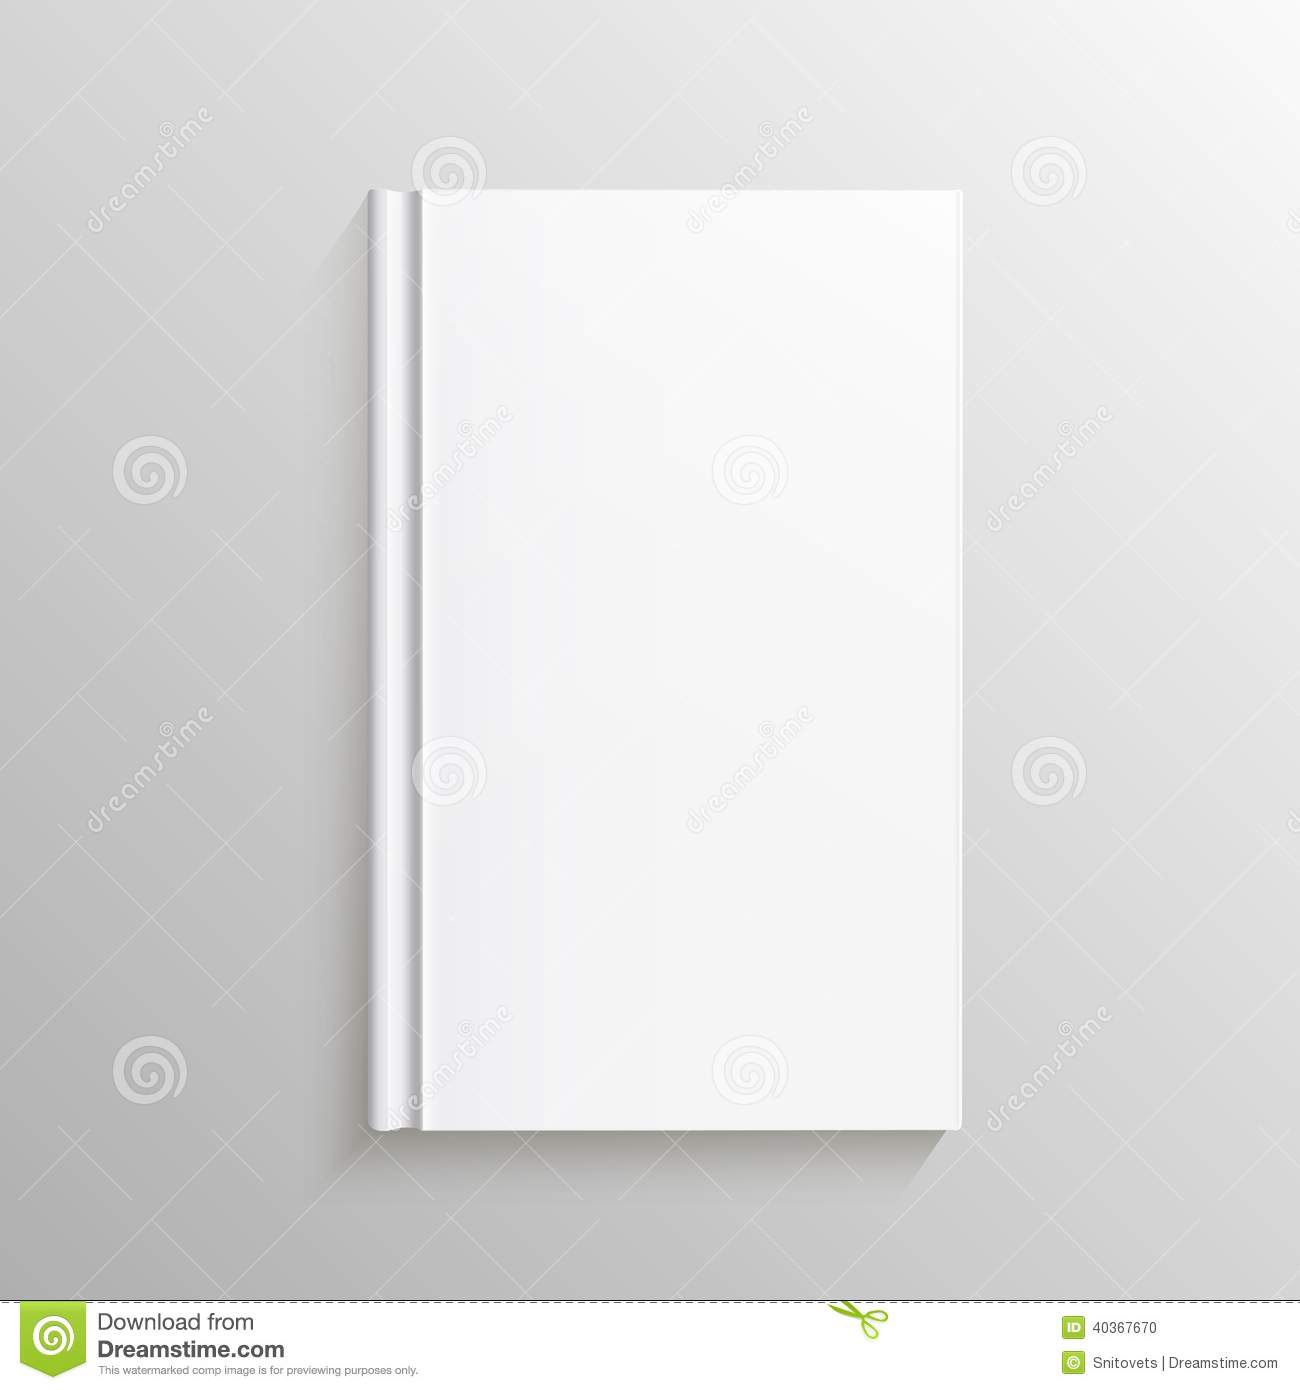 Blank Book Cover Vector Illustration Free ~ Blank book cover gradient mesh isolated object for